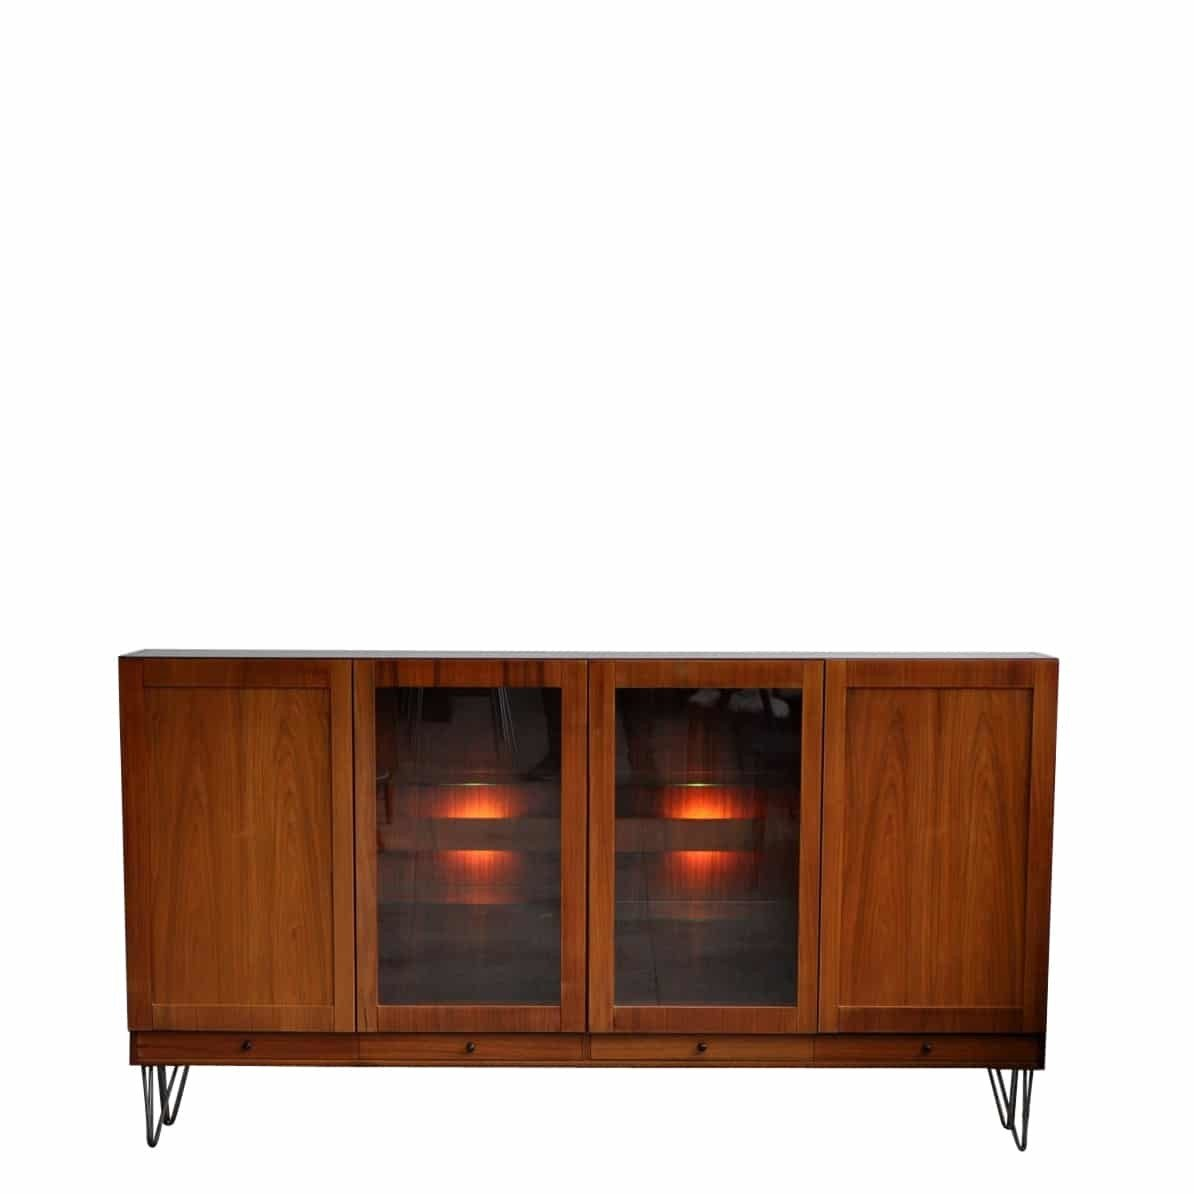 Highboard, Dania, lata 70.